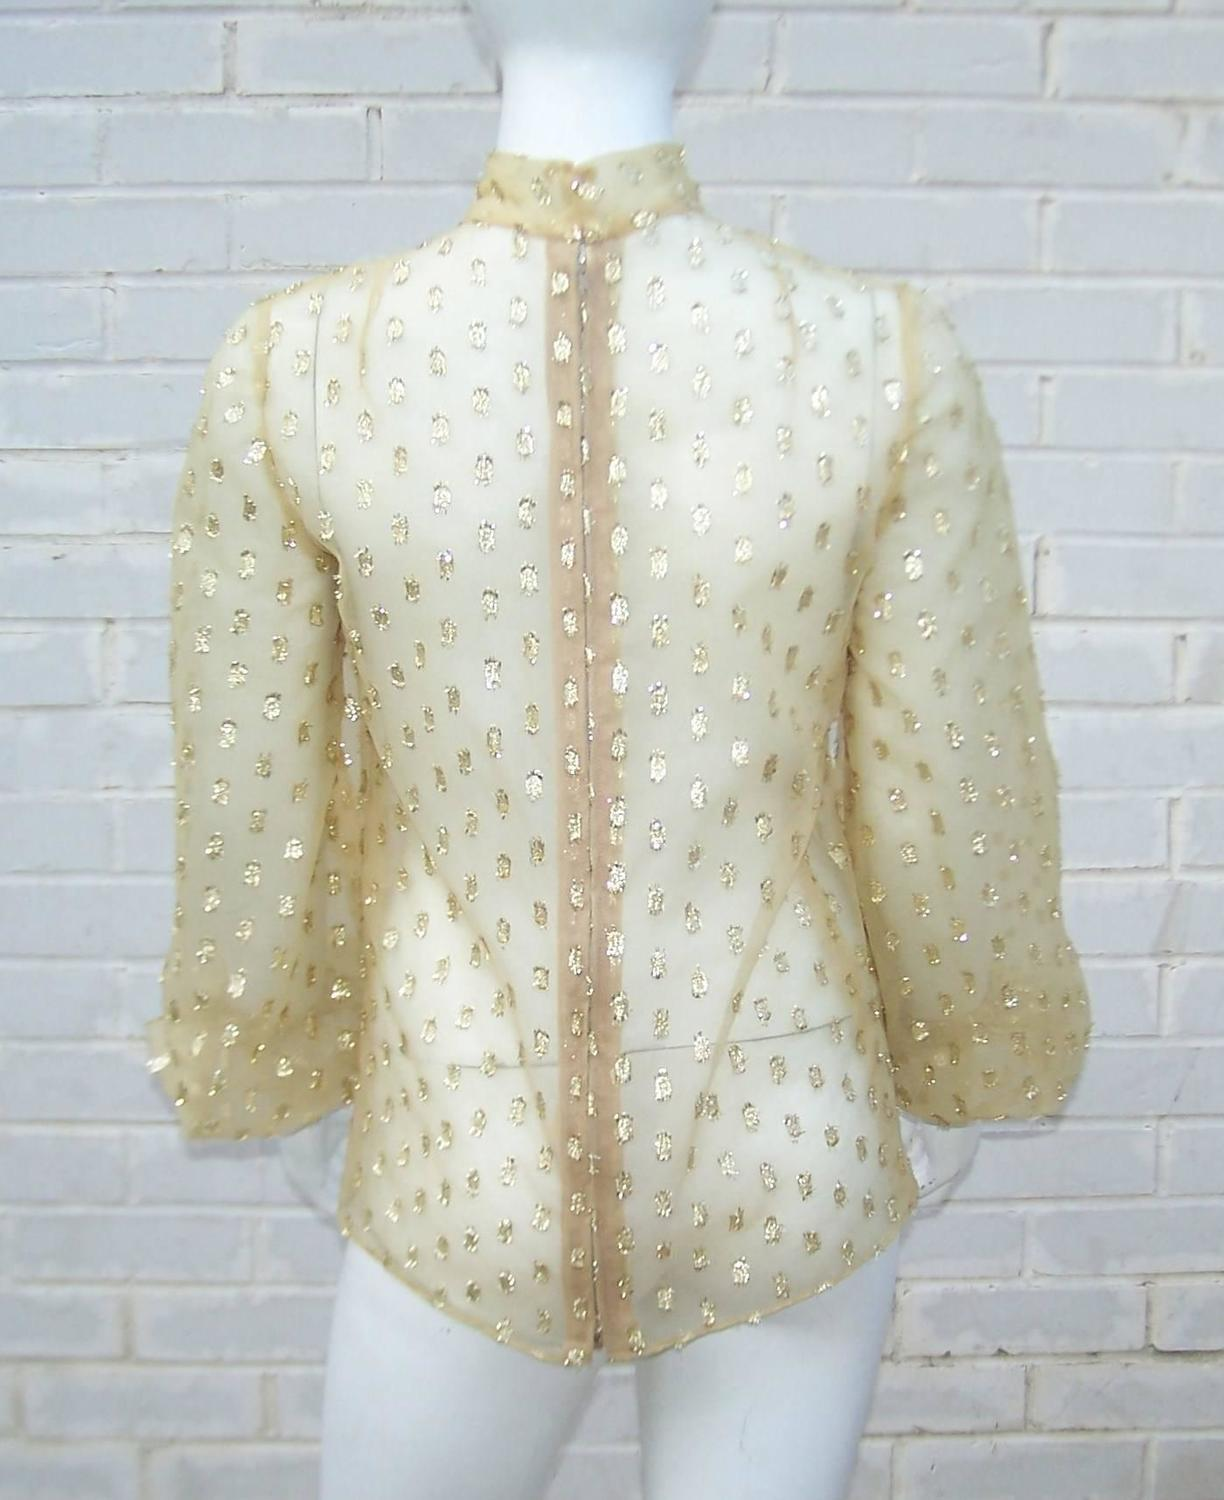 c 1970 sheer gold lame stock tie blouse for sale at 1stdibs